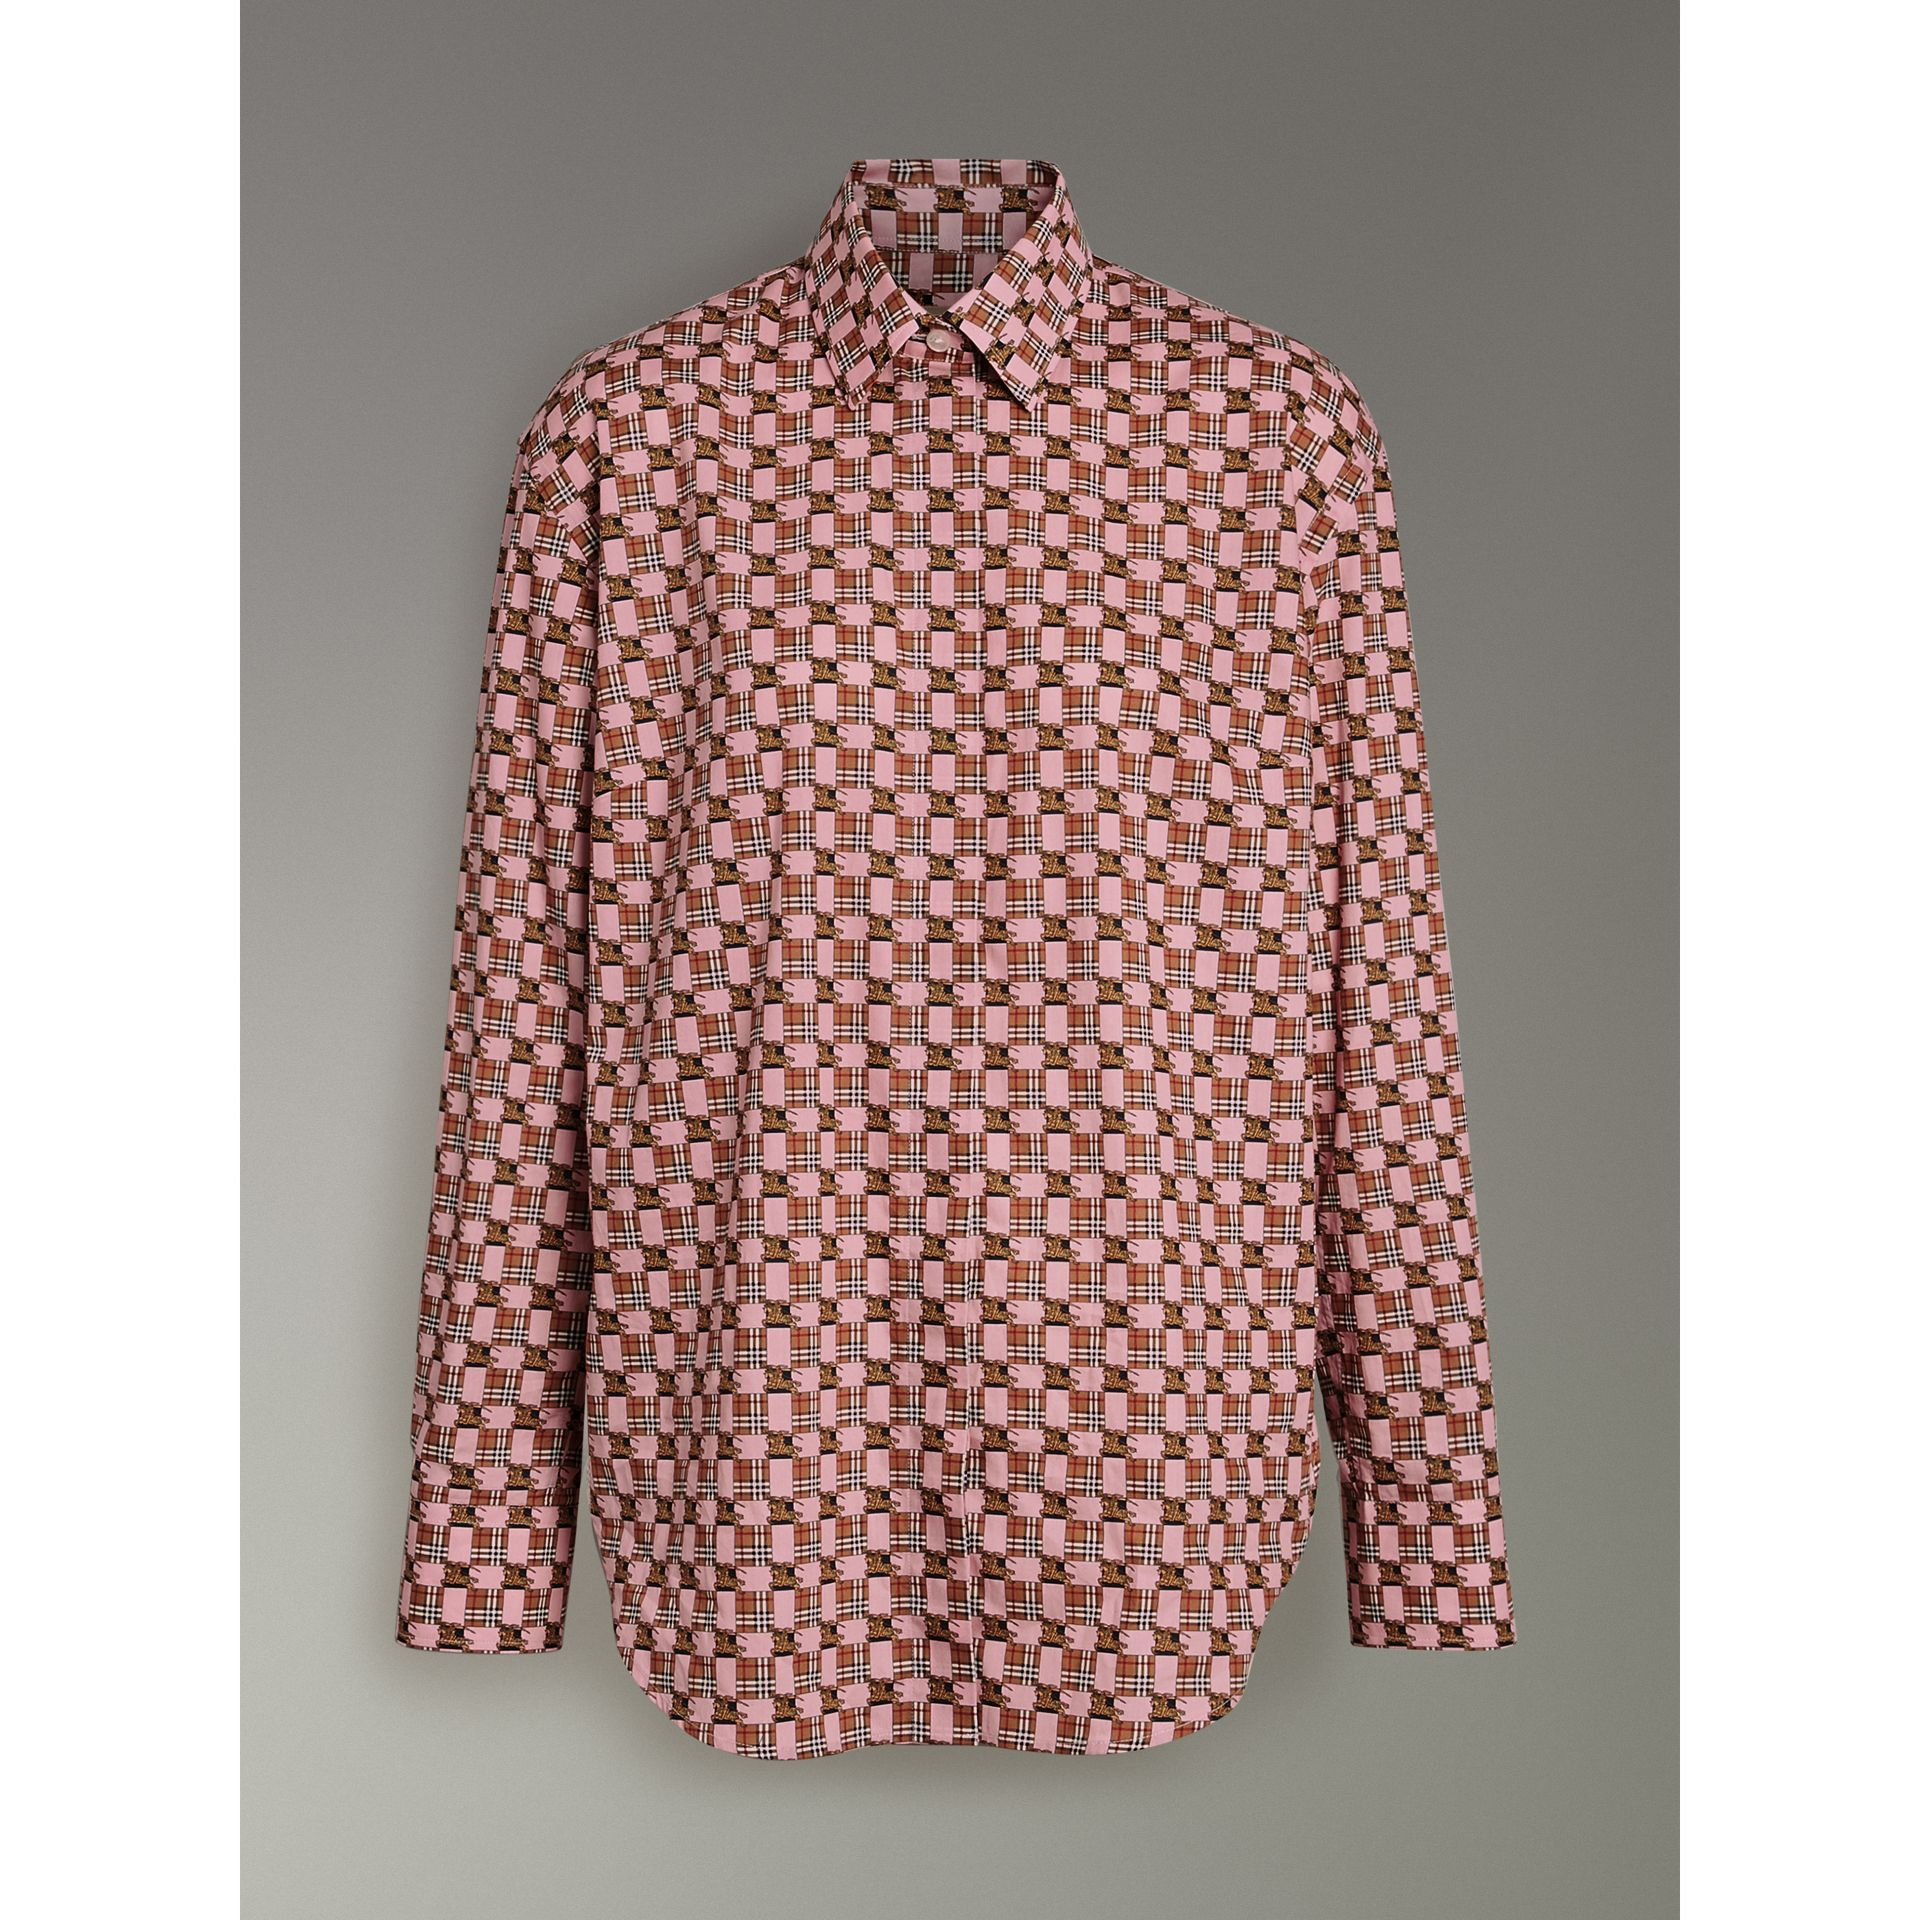 Tiled Archive Print Cotton Shirt in Pink - Women | Burberry - gallery image 3